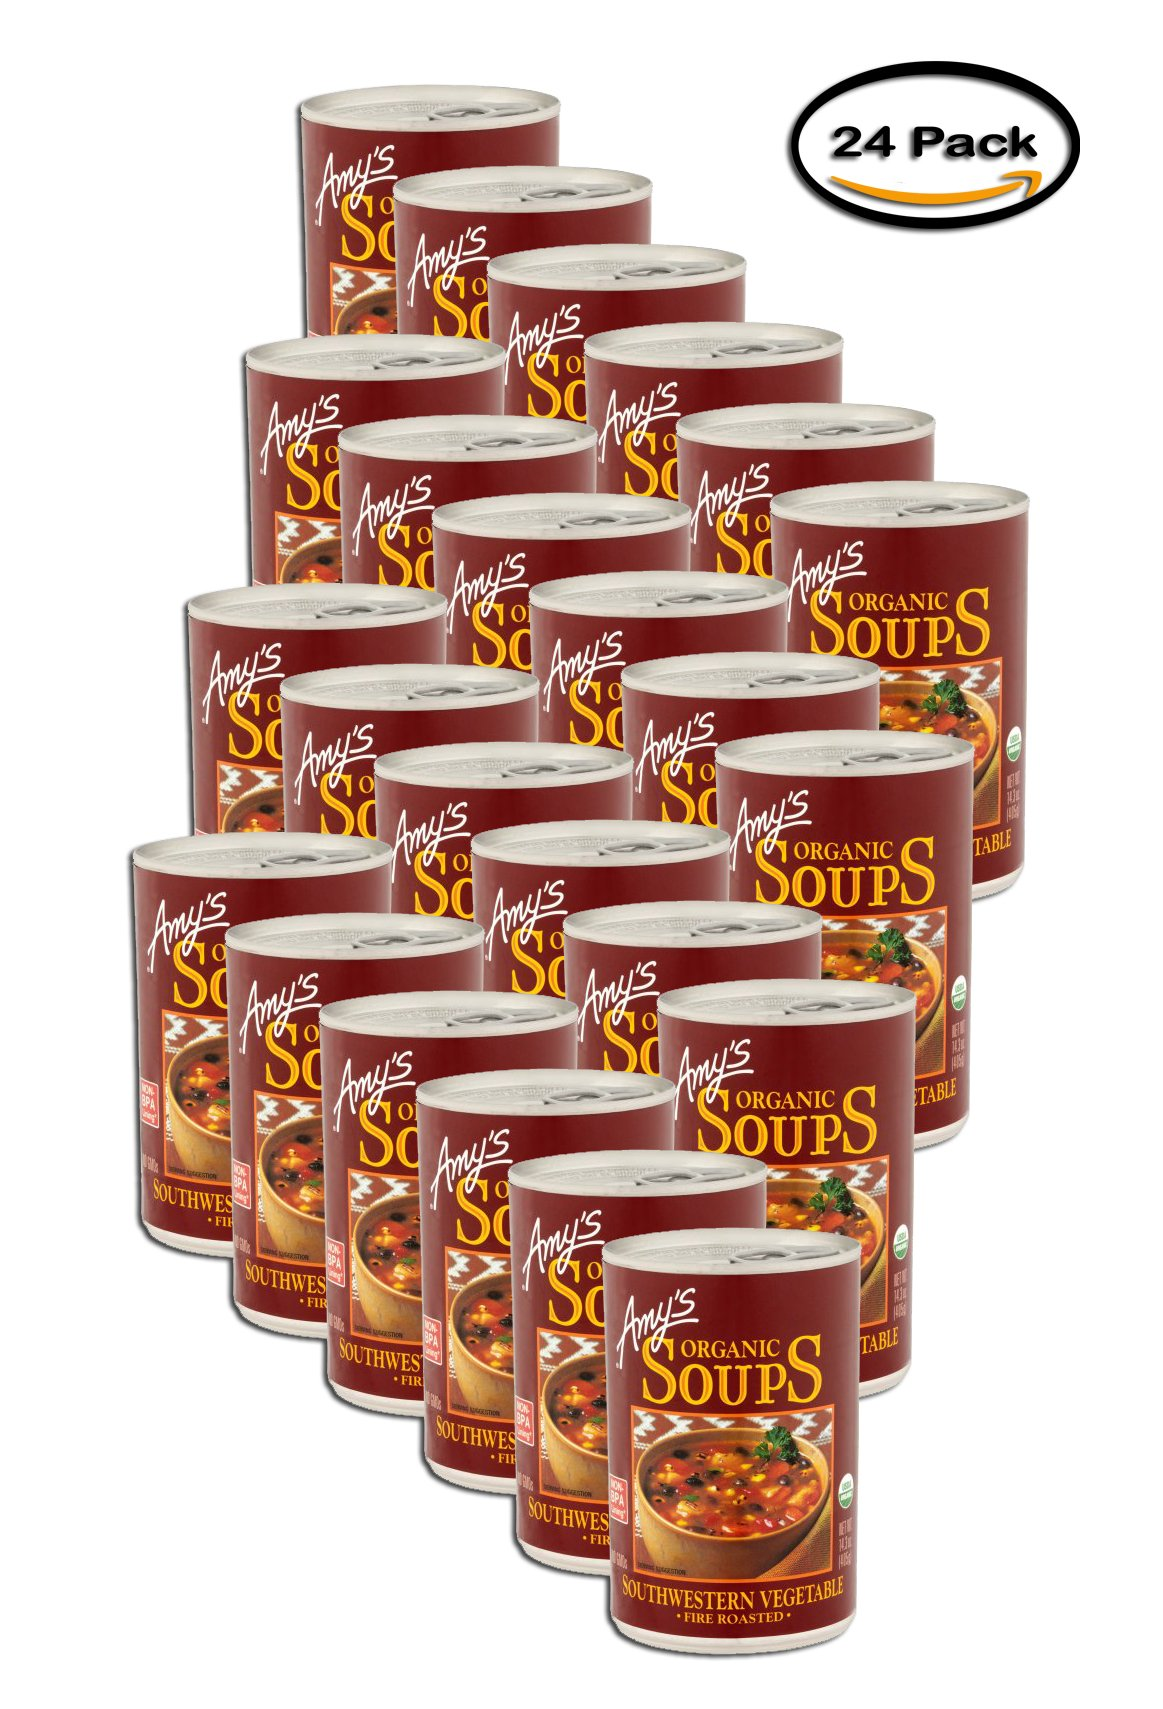 PACK OF 24 - Amy's Organic Soups Southwestern Vegetable Fire Roasted, 14.3 OZ